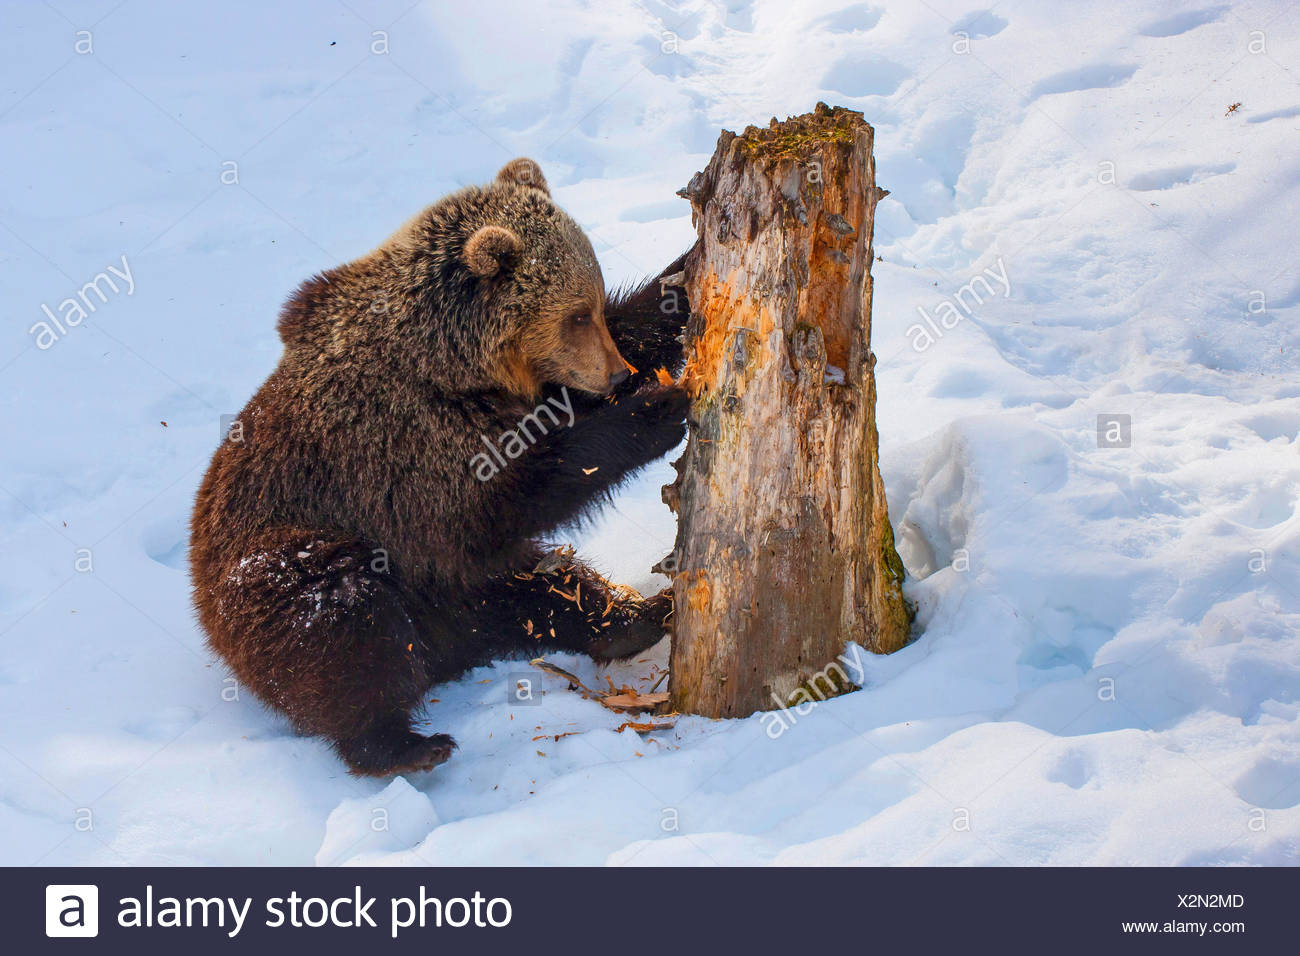 brown bear (Ursus arctos), juvenile brown bear in the snow scratching at an old tree trunk, Switzerland, Waadt, Vallobre - Stock Image